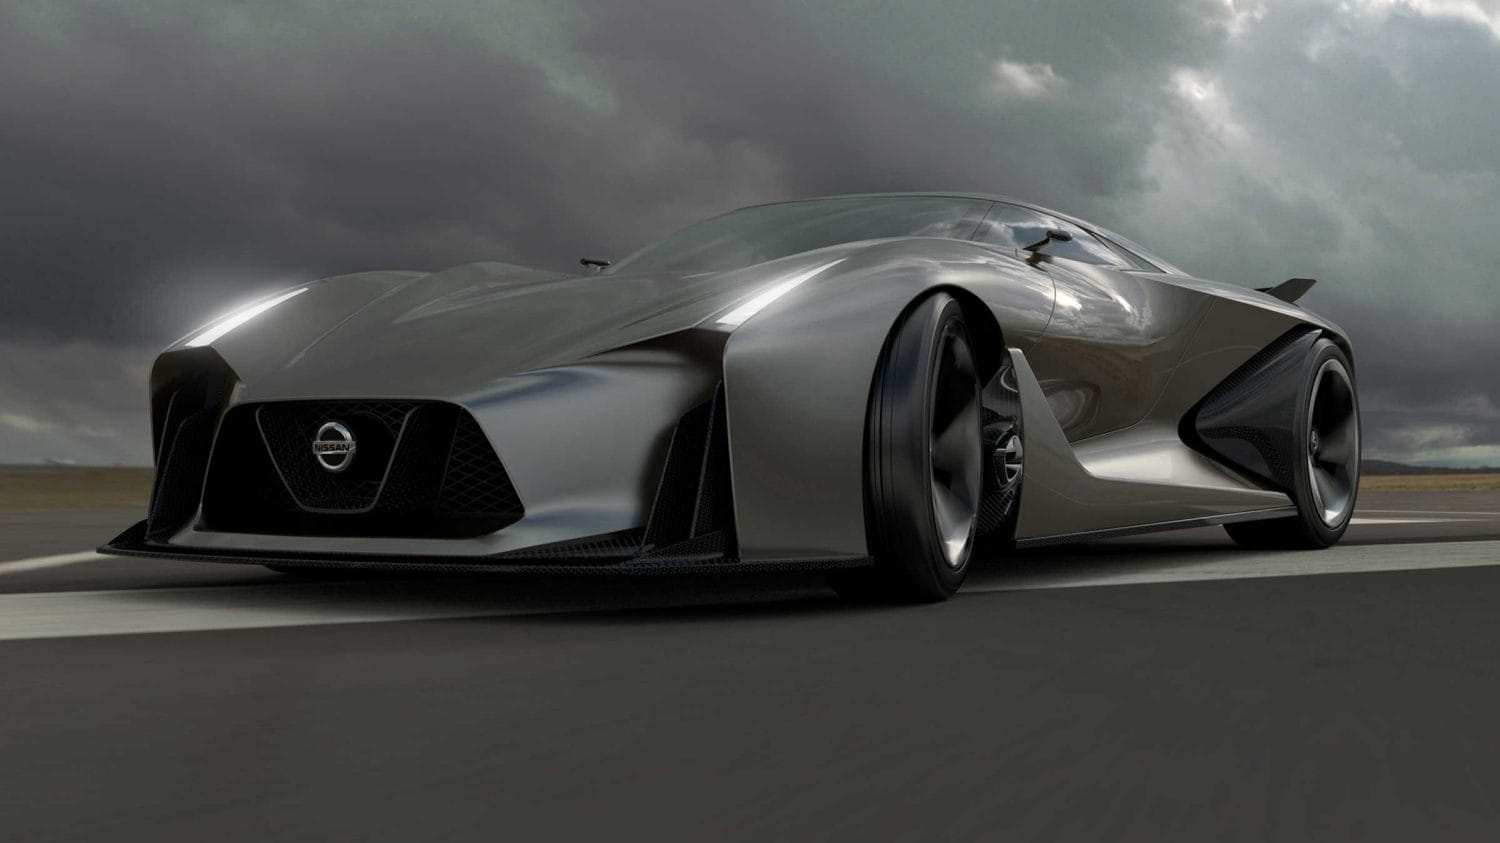 13 Concept of Nissan 2020 Hp Release Date with Nissan 2020 Hp